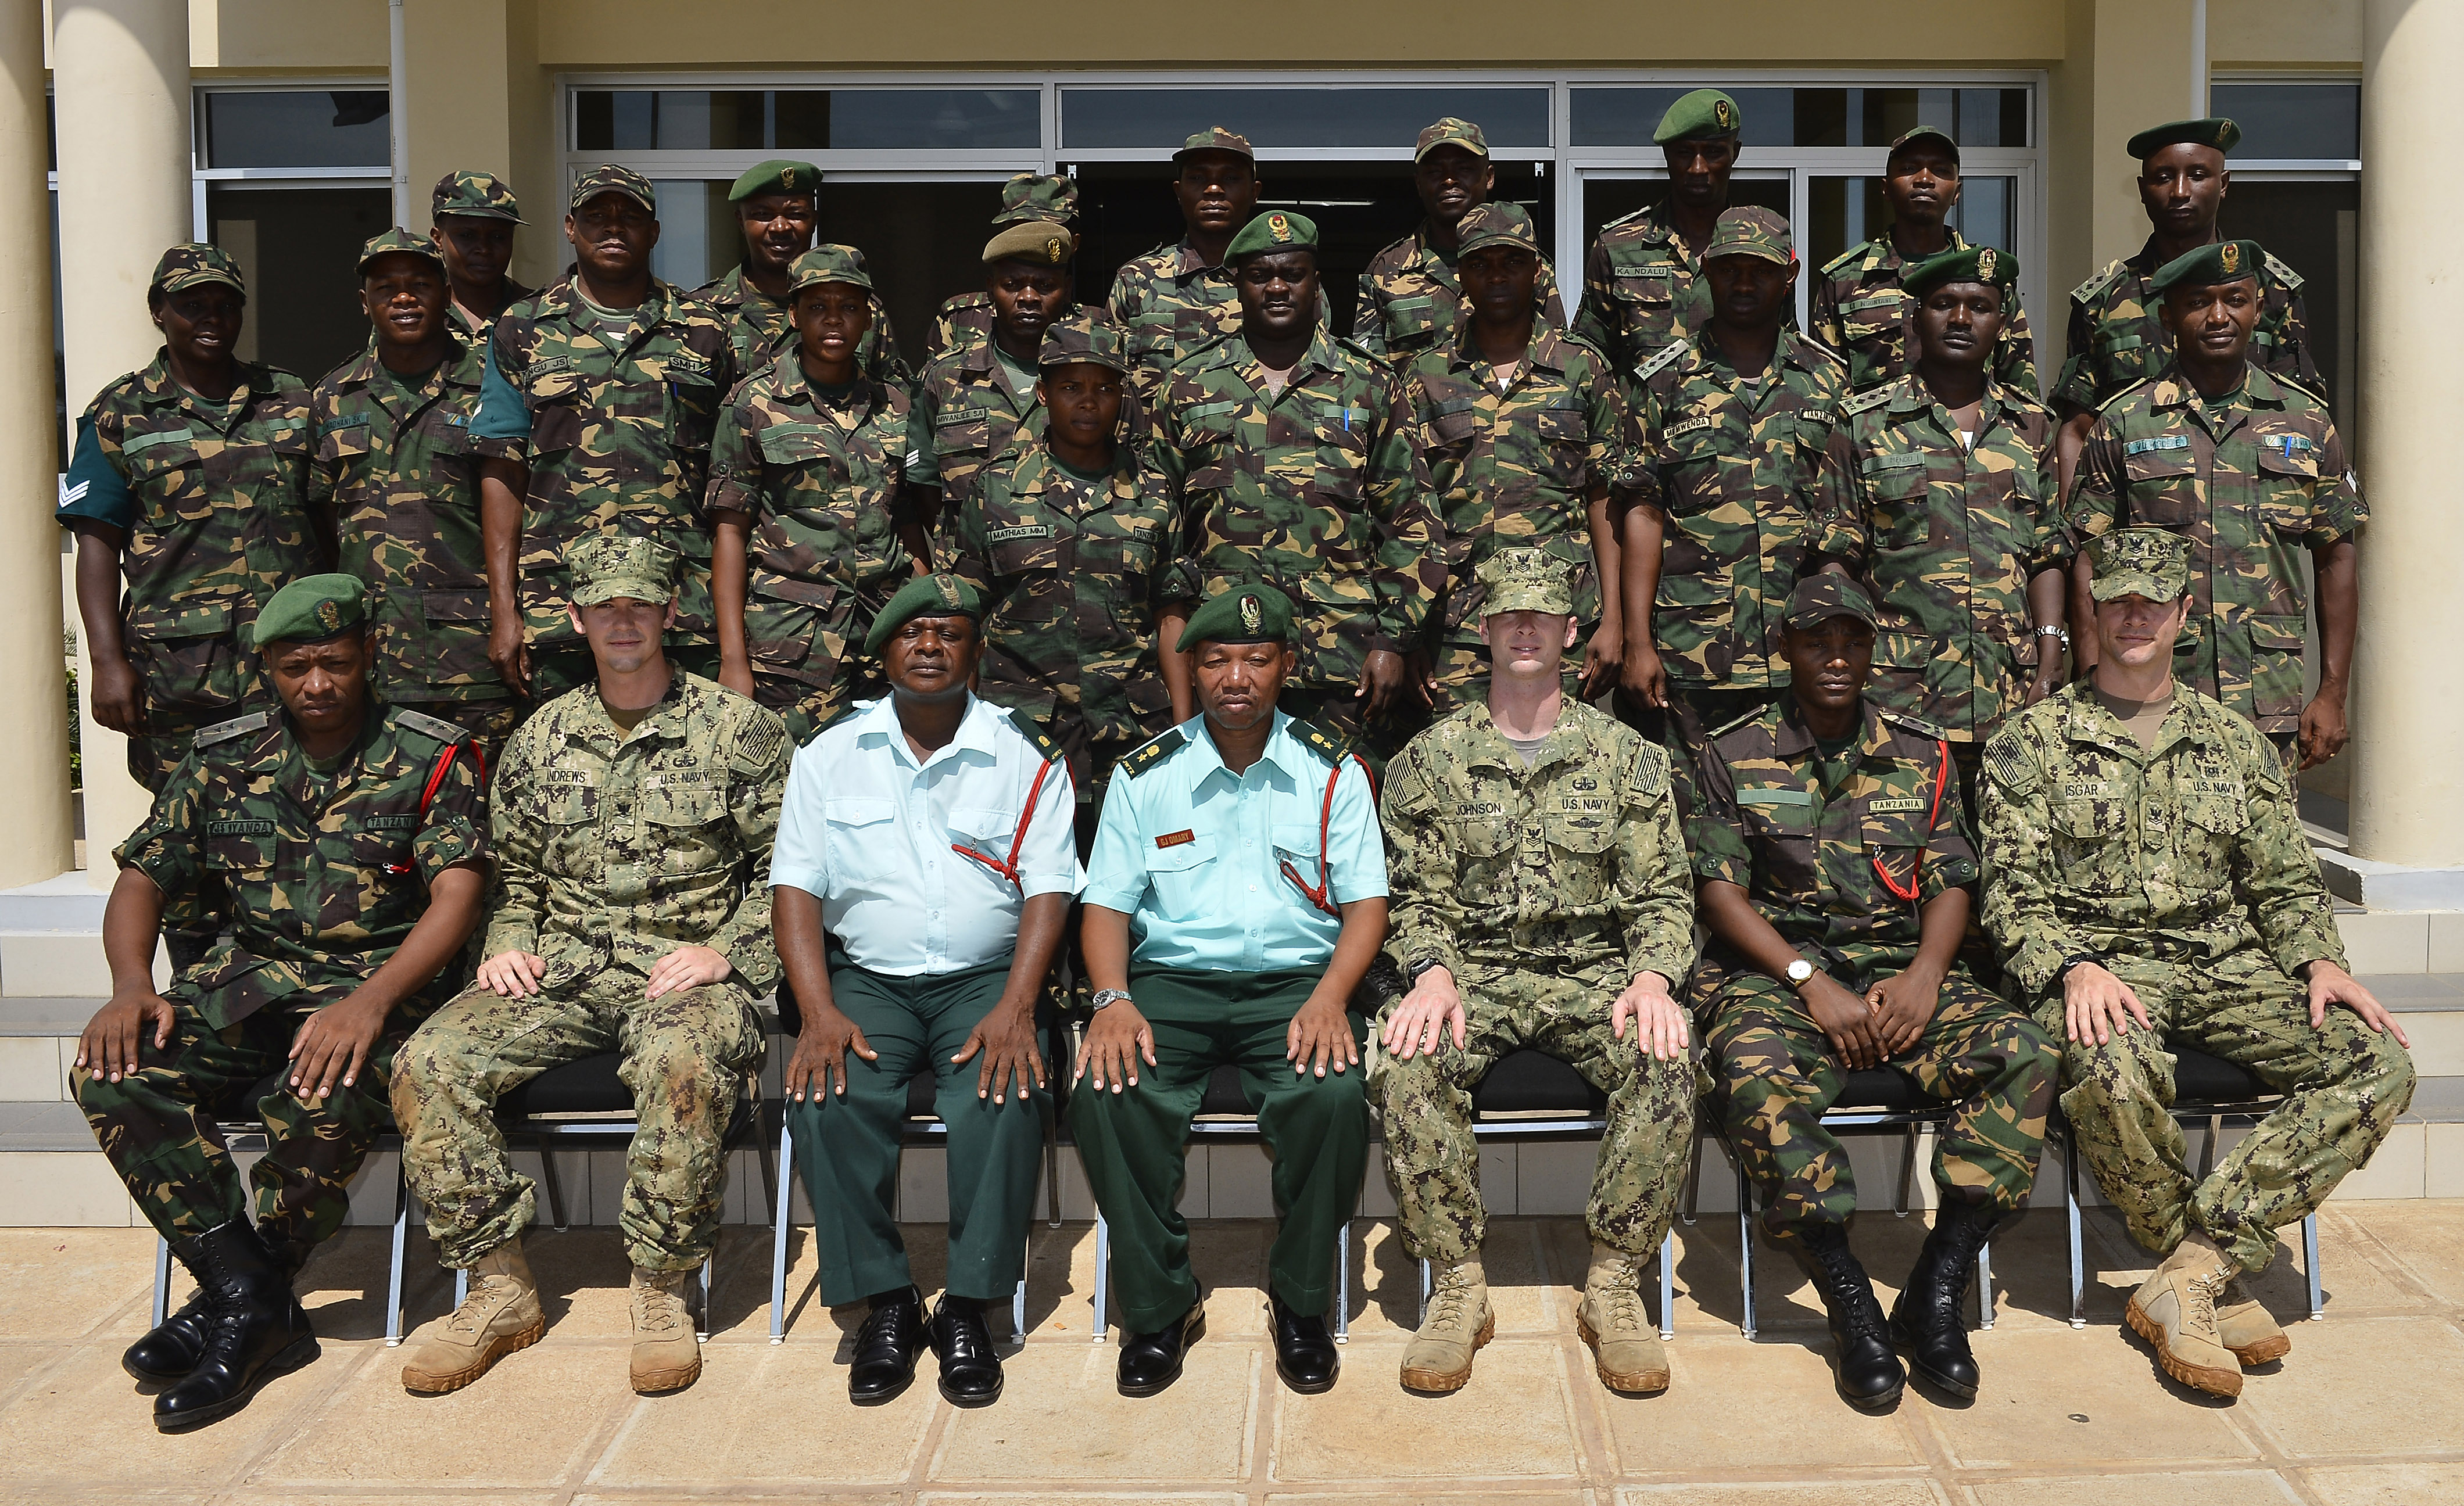 Members of the Tanzania People's Defence Force and Combined Joint Task Force-Horn of Africa's Explosive Ordnance Disposal Mobile Unit 1 pose for a photo after a graduation Feb. 17, 2016. The ceremony marked the conclusion of the 25-day Humanitarian Mine Action Level 1 training in Dar es Salaam, Tanzania. The training was the first phase in a curriculum designed to build a cadre of HMA/Counter-Improvised Explosive Device trainers within the TPDF. (U.S. Air Force photo by Tech. Sgt. Dan DeCook)